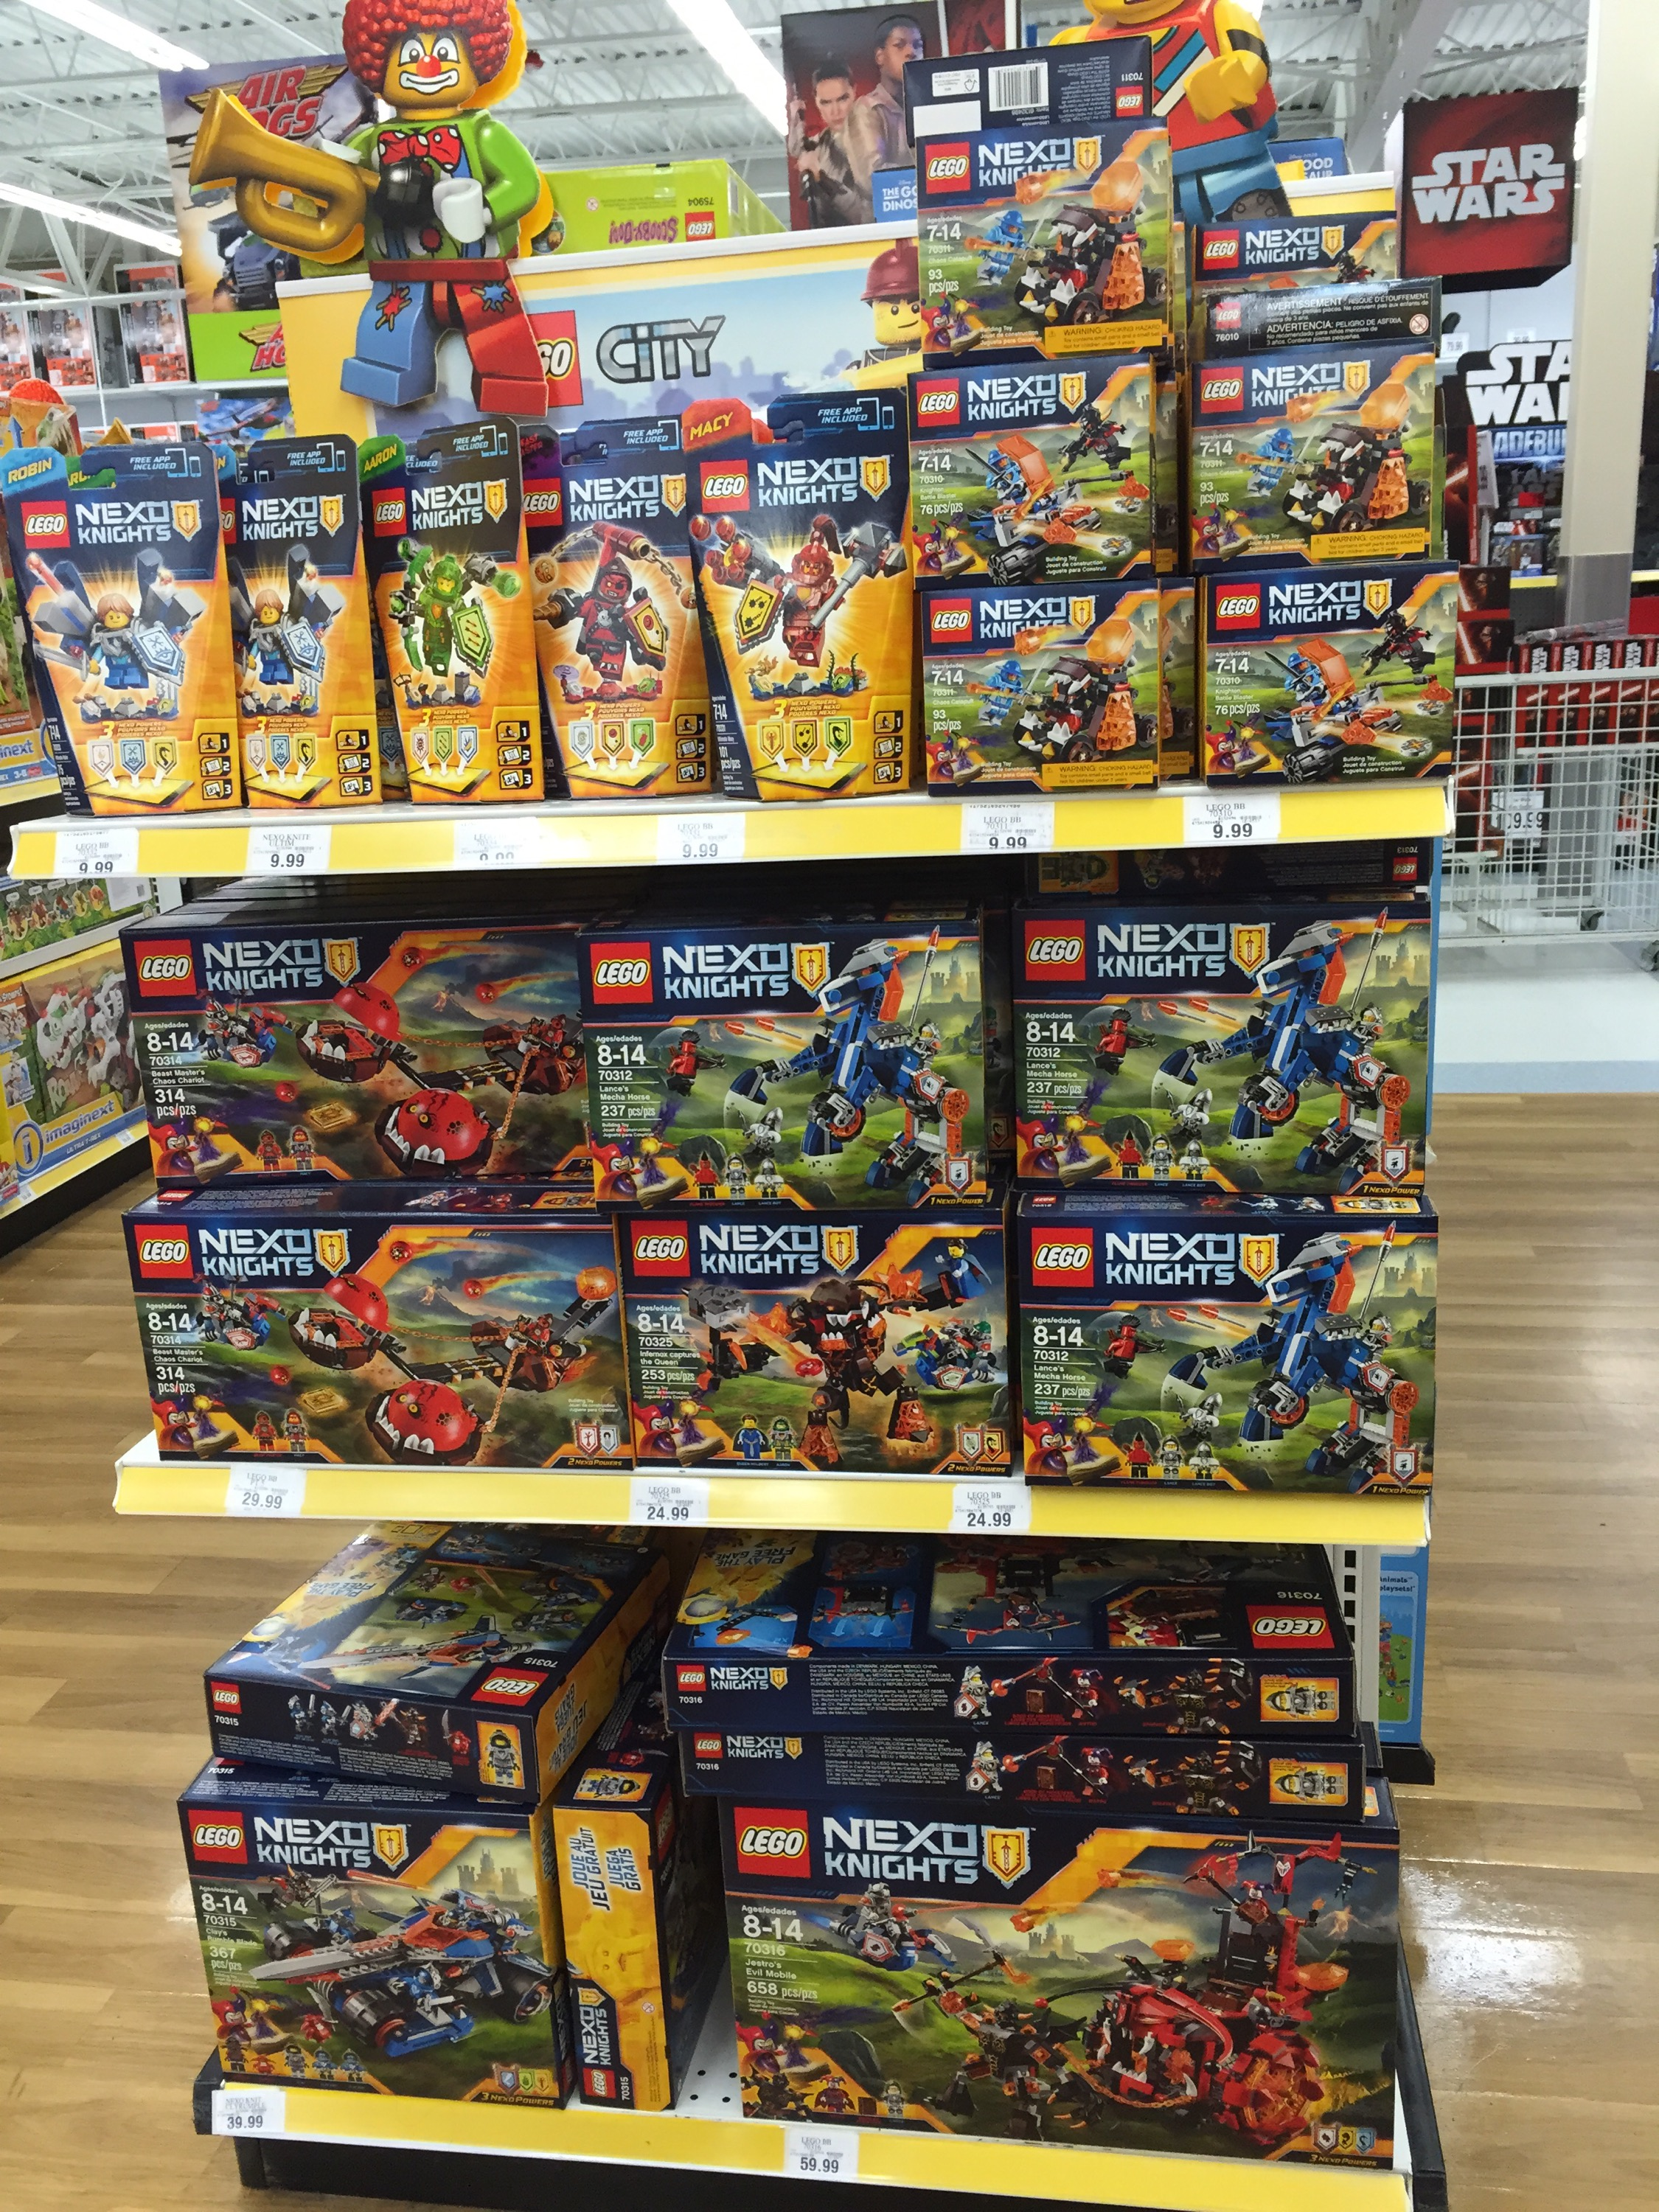 2016 LEGO Nexo Knights Sets Released & Photos! - Bricks and Bloks